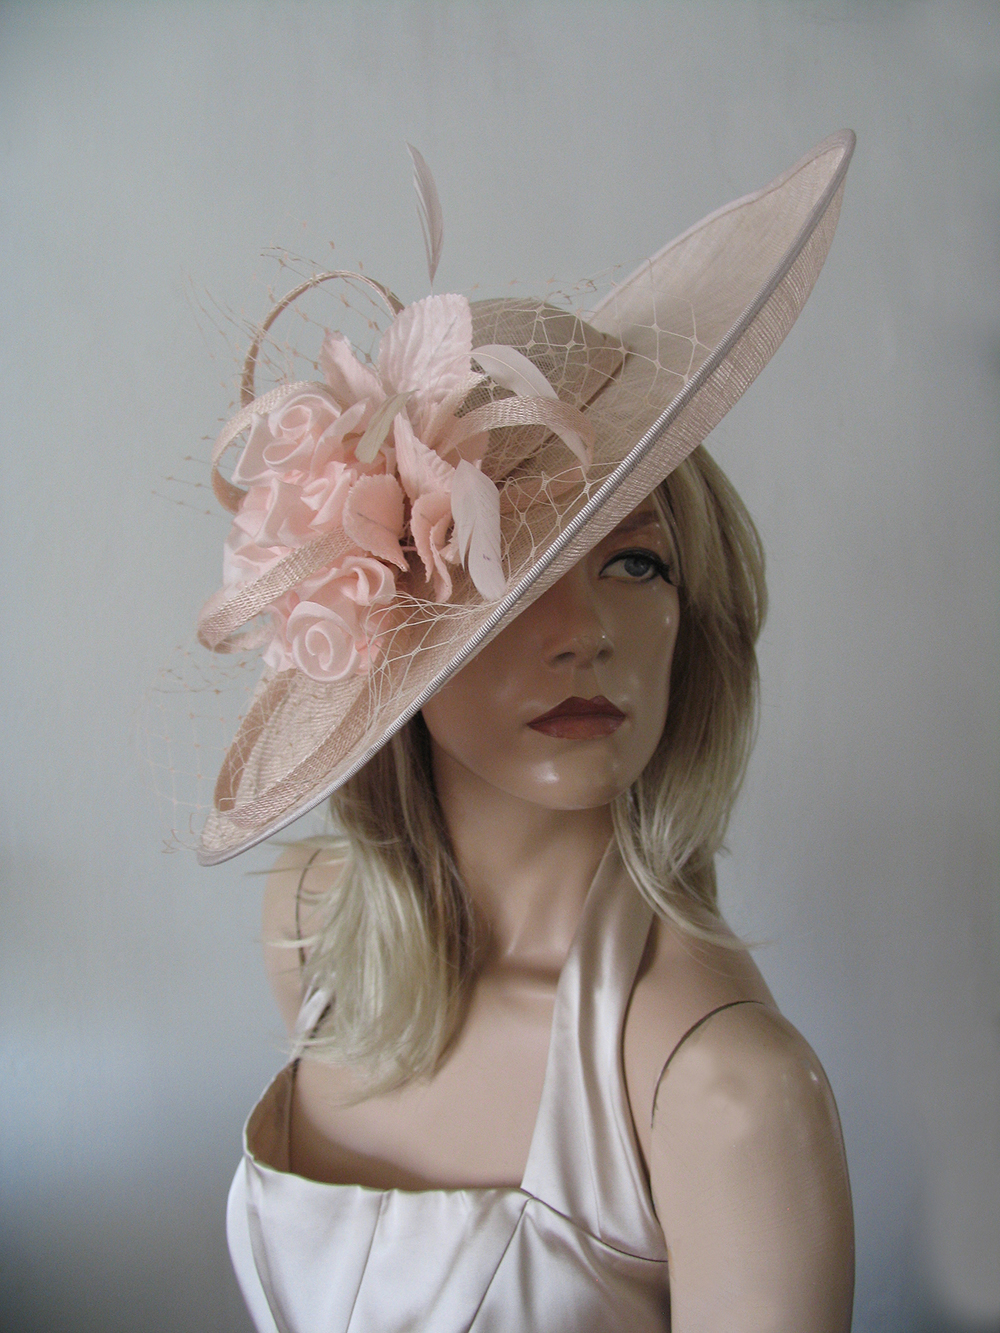 Blush Formal Wedding Guest Hats 2021. Blush Pink Hats for Royal Ascot 2021. Blush Pink Hatinator Hats, Formal Hat Hire 2021. Hat Hire Berkshire. Wedding guest hats 2021. Hats for Hire 2020. Blush Pink Ladies Wedding Hats. Blush Pink Mother of the Bride Hats 2021. Royal Ascot Hat Rental 2021. Wedding Hats for Hire UK 2021. Hire Hats for Epsom Races 2021.